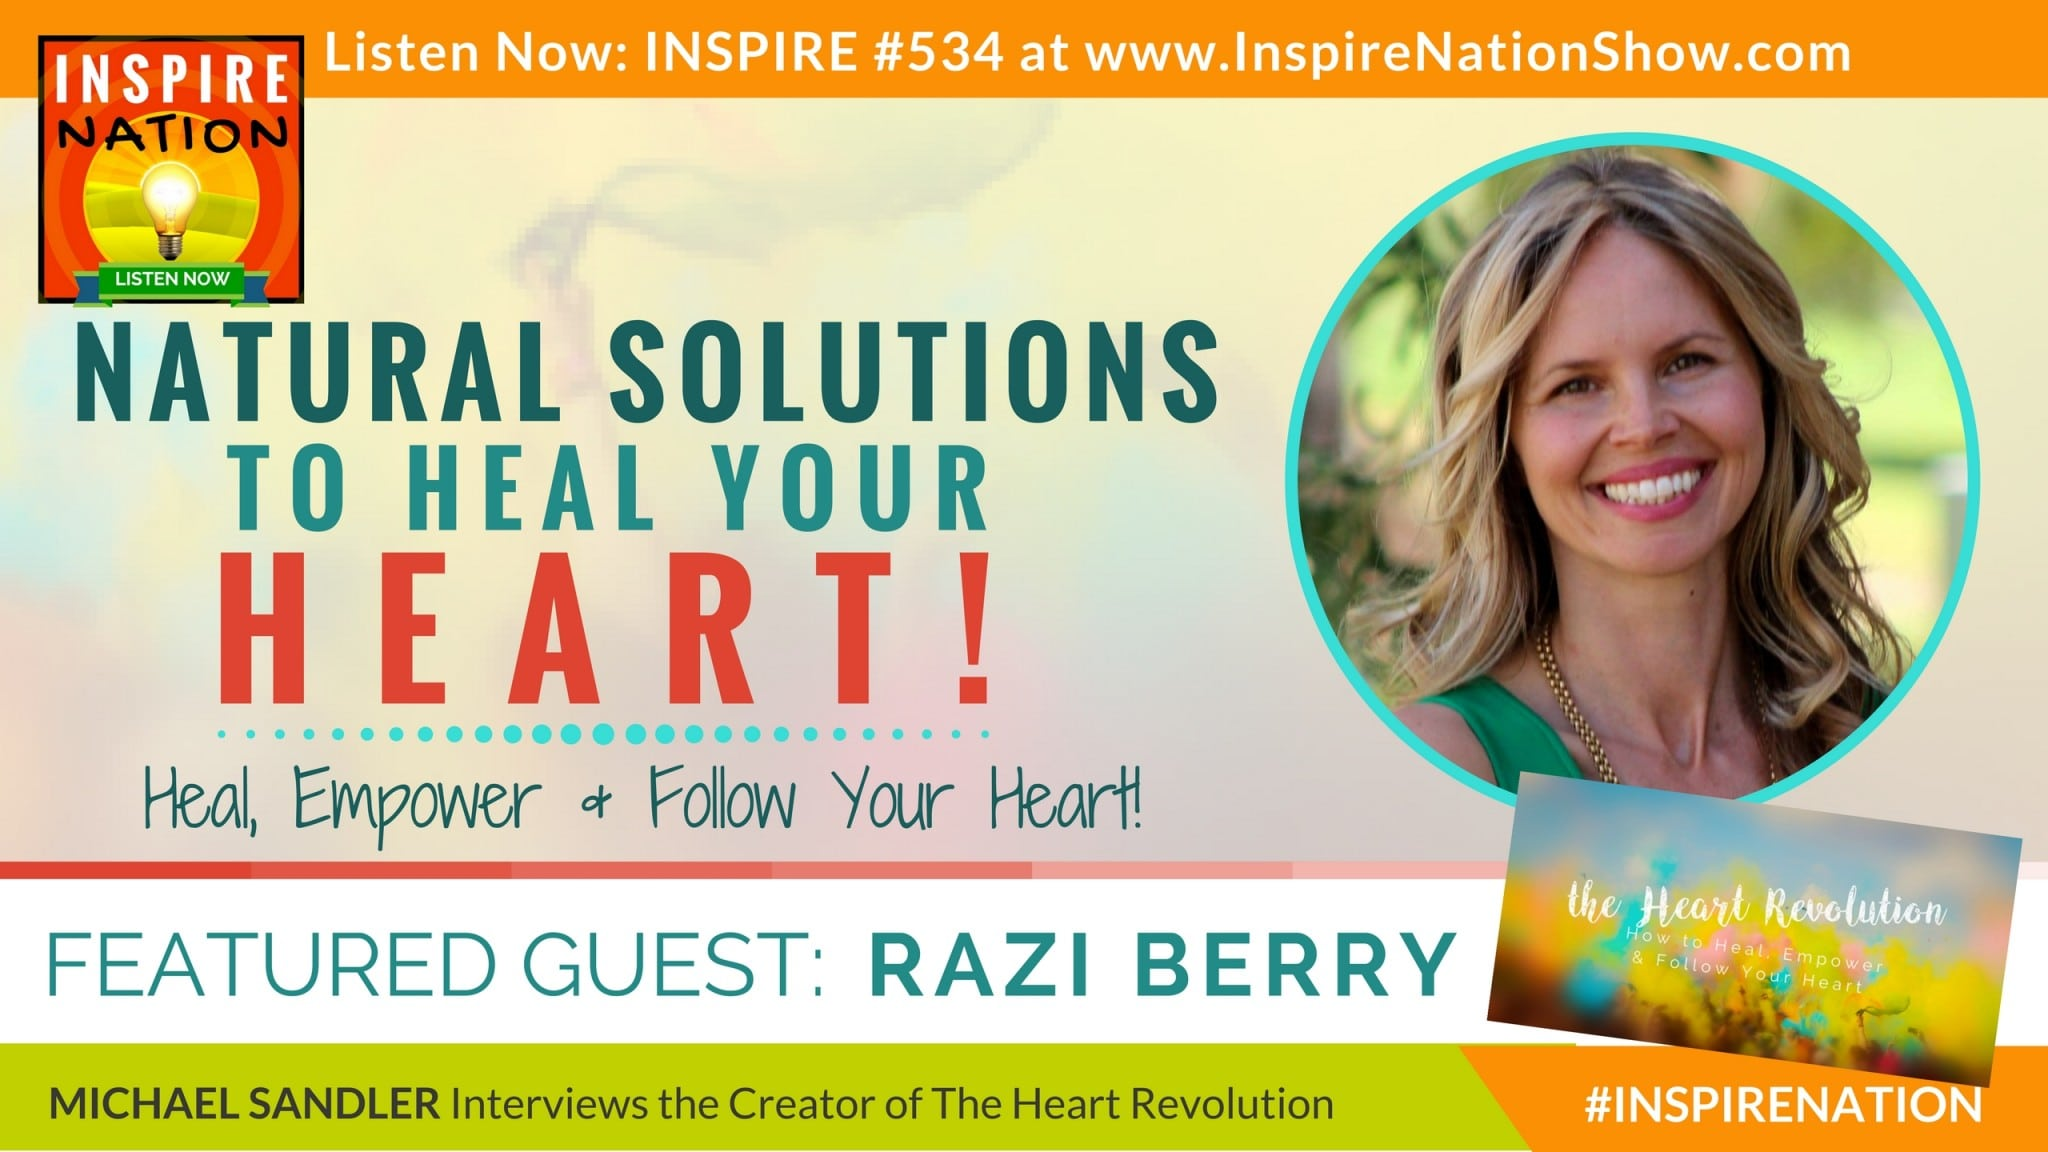 Michael Sandler interview Razi Berry on healiing, empowering and following your heart!